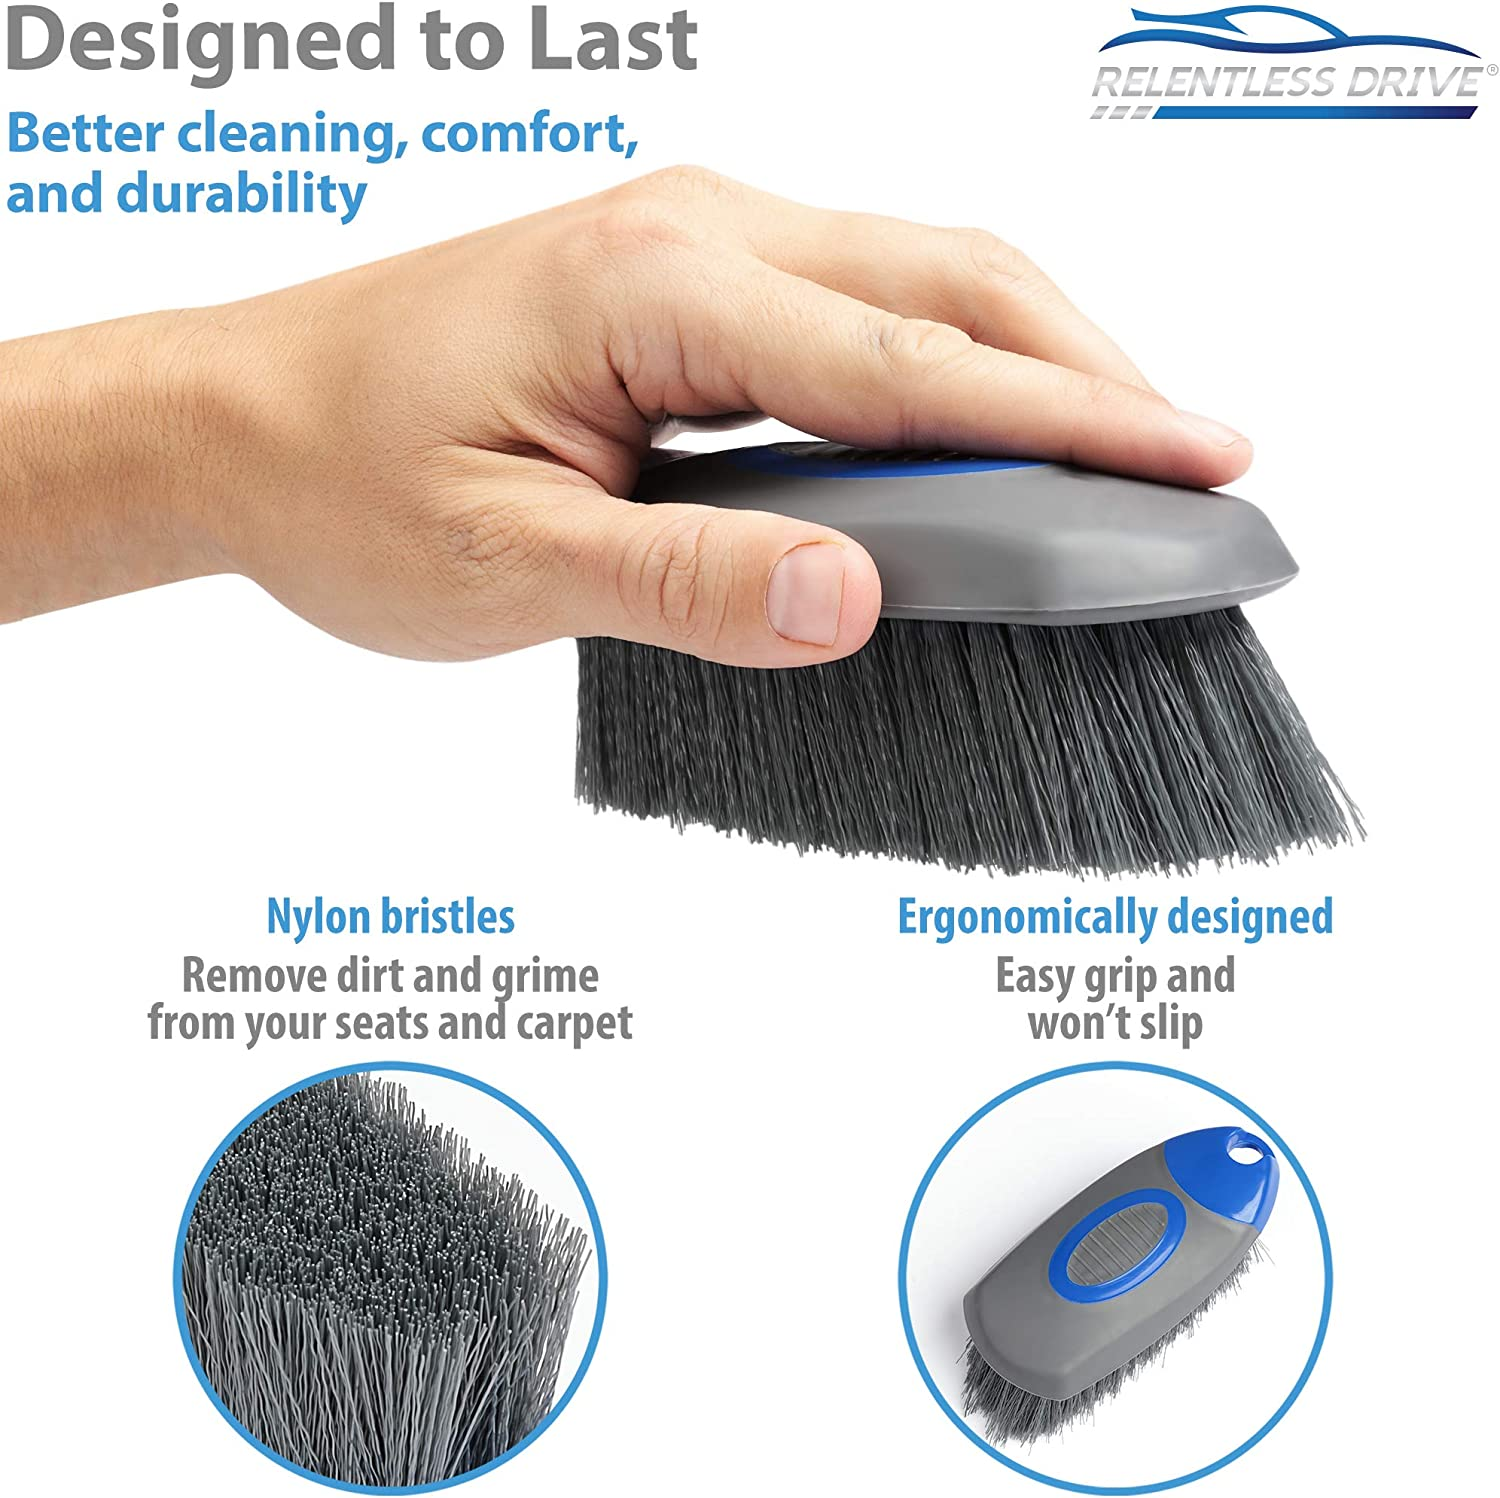 VIKING Carpet and Upholstery Cleaning Brush Scrub Brush for Car Interior Home Couch Stain Remover Black//Blue